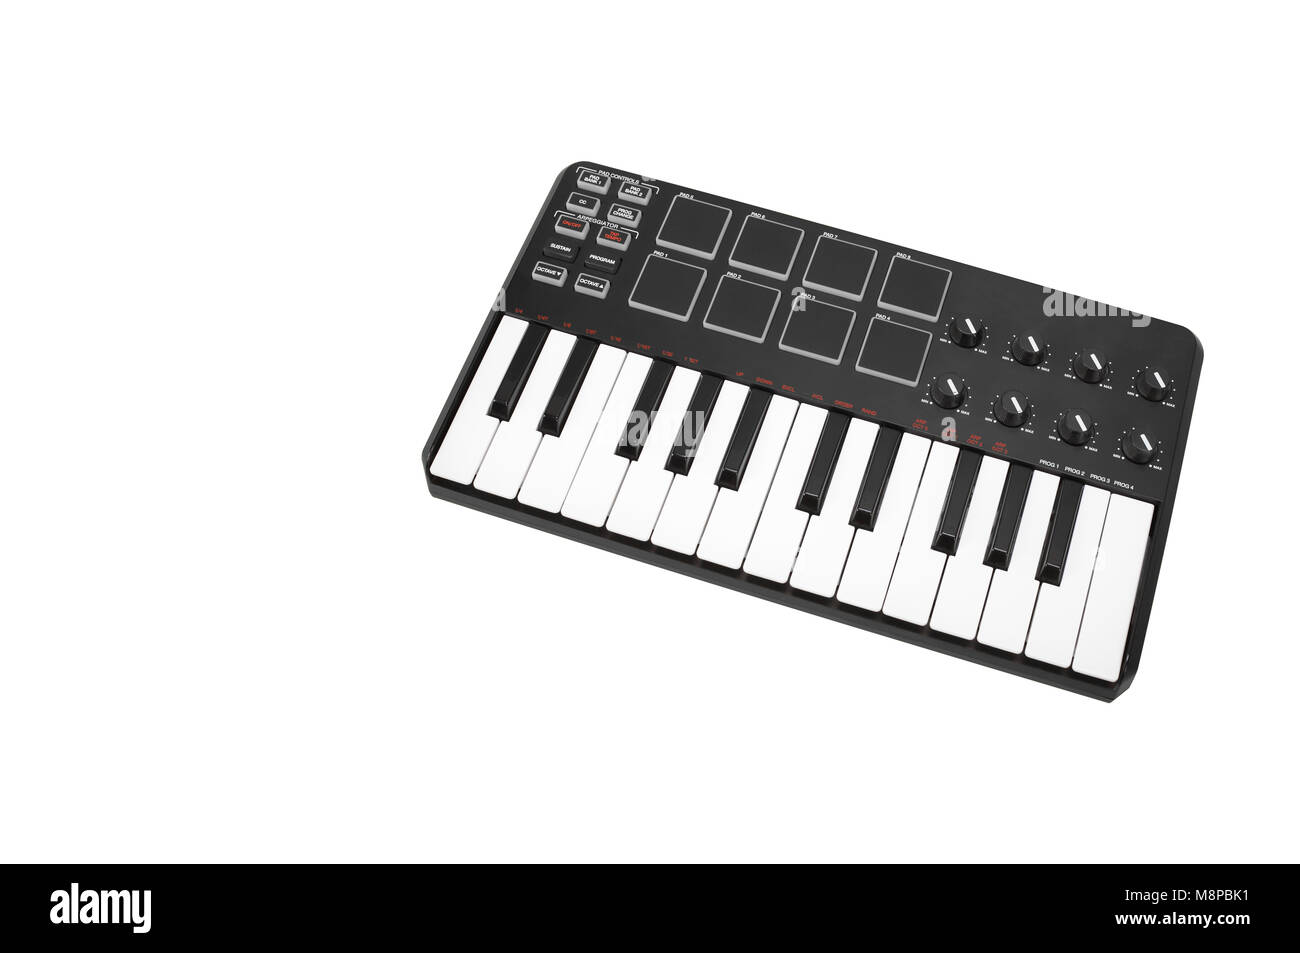 Musical instrument - Sloseup MIDI piano keyboard. It is isolated on a white background - Stock Image